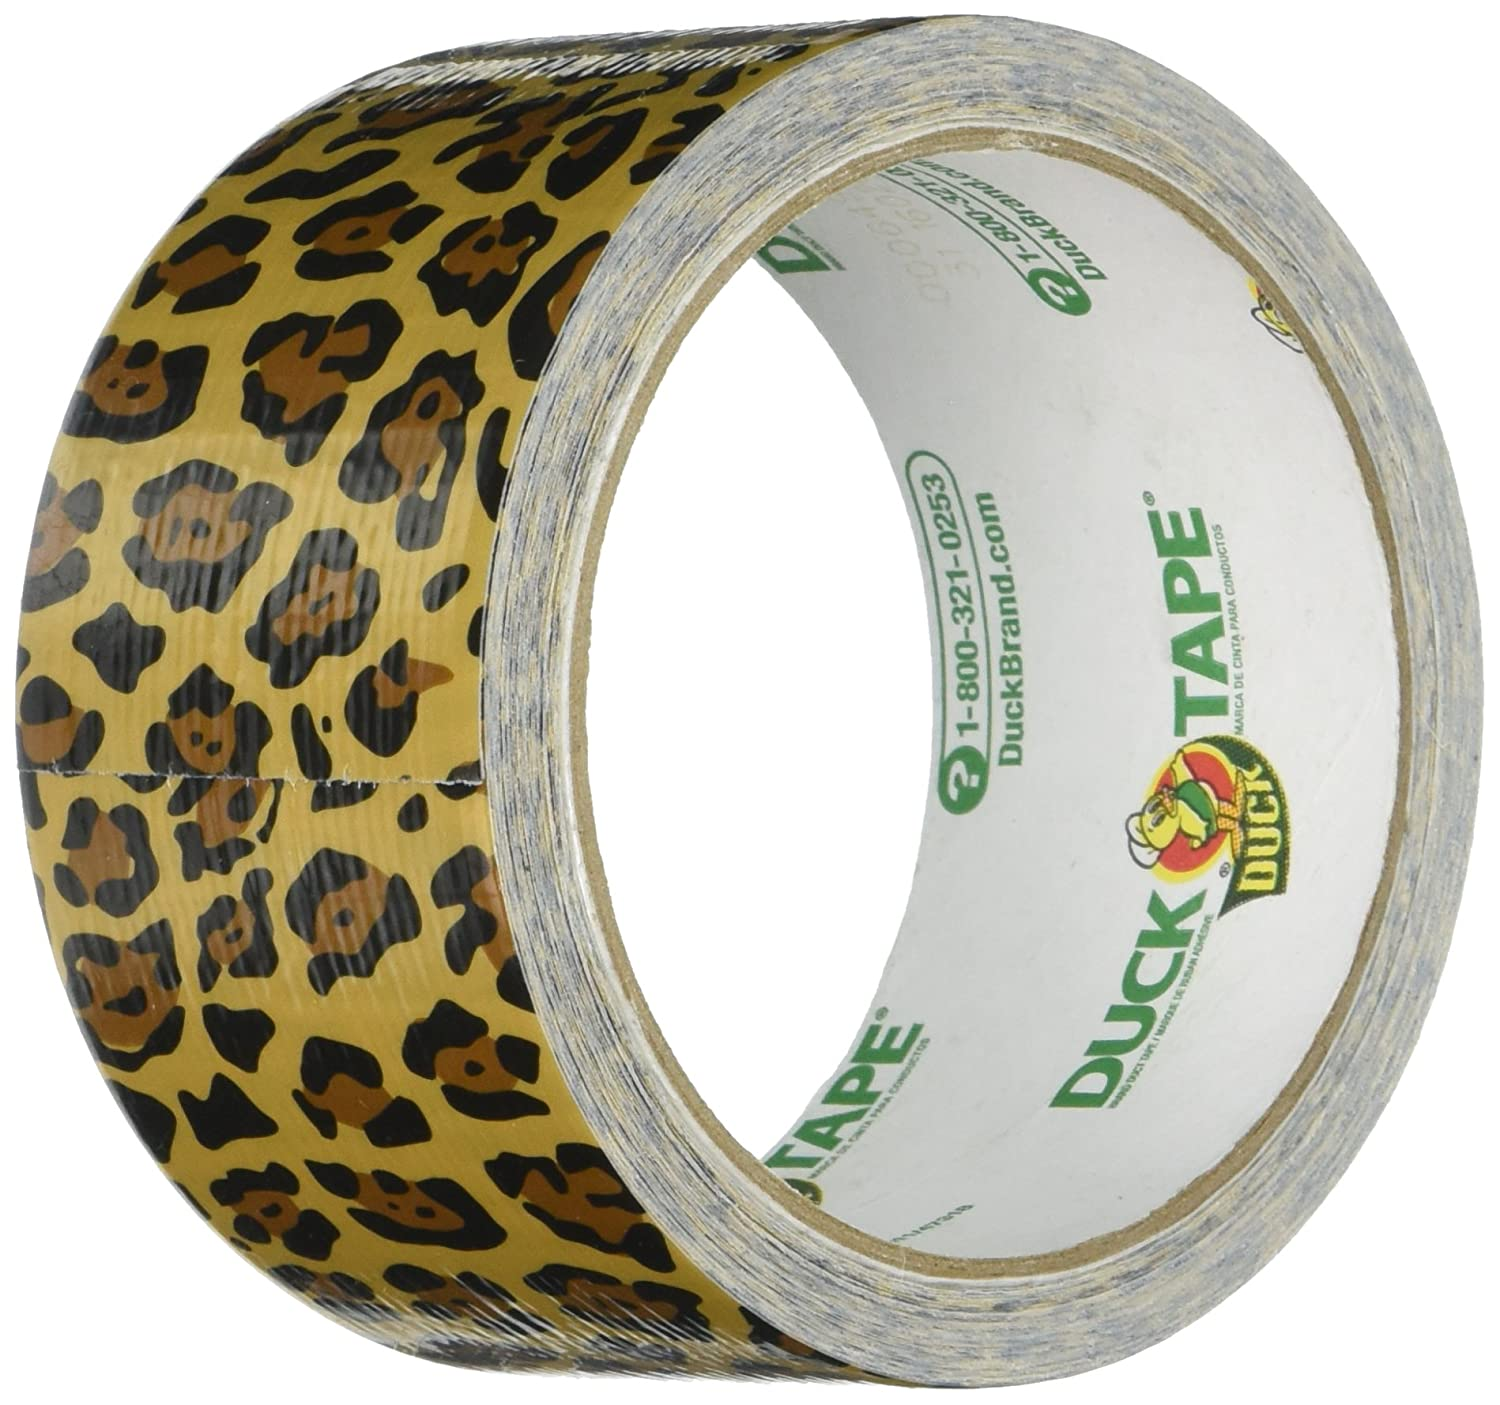 Camouflage Duck Brand Printed Duct Tape Patterns x 30 ft. 1.88 in